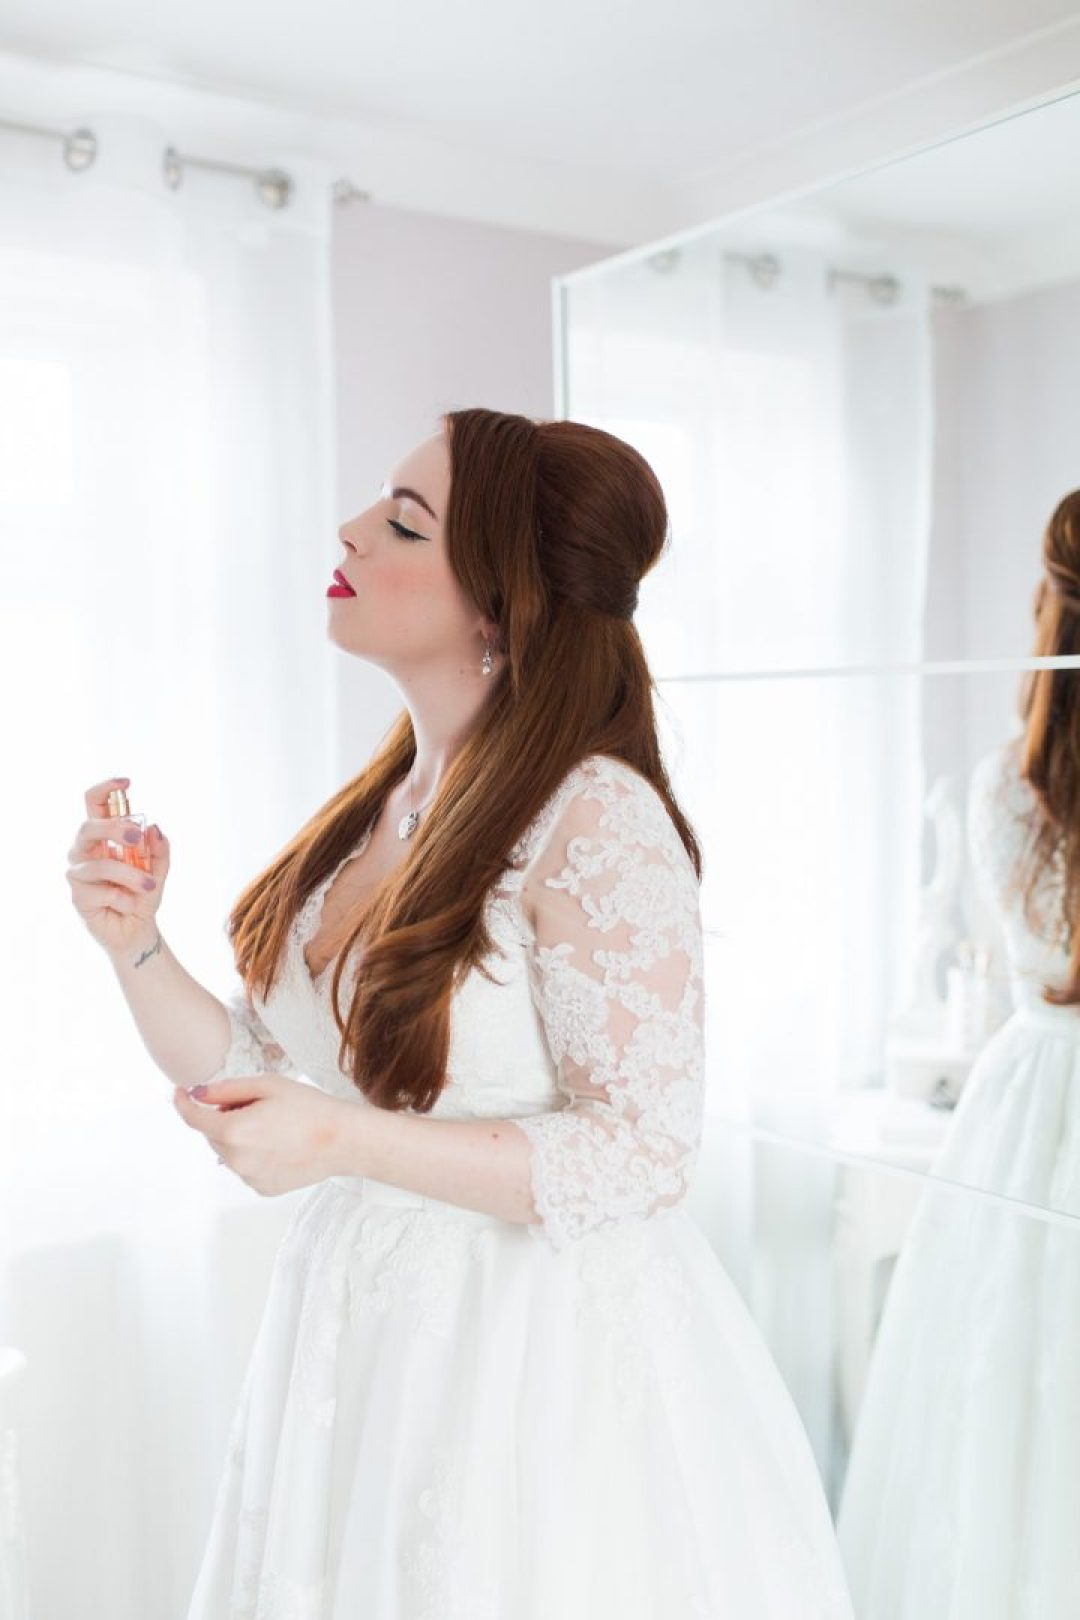 How to get the best getting ready photos on your wedding day?